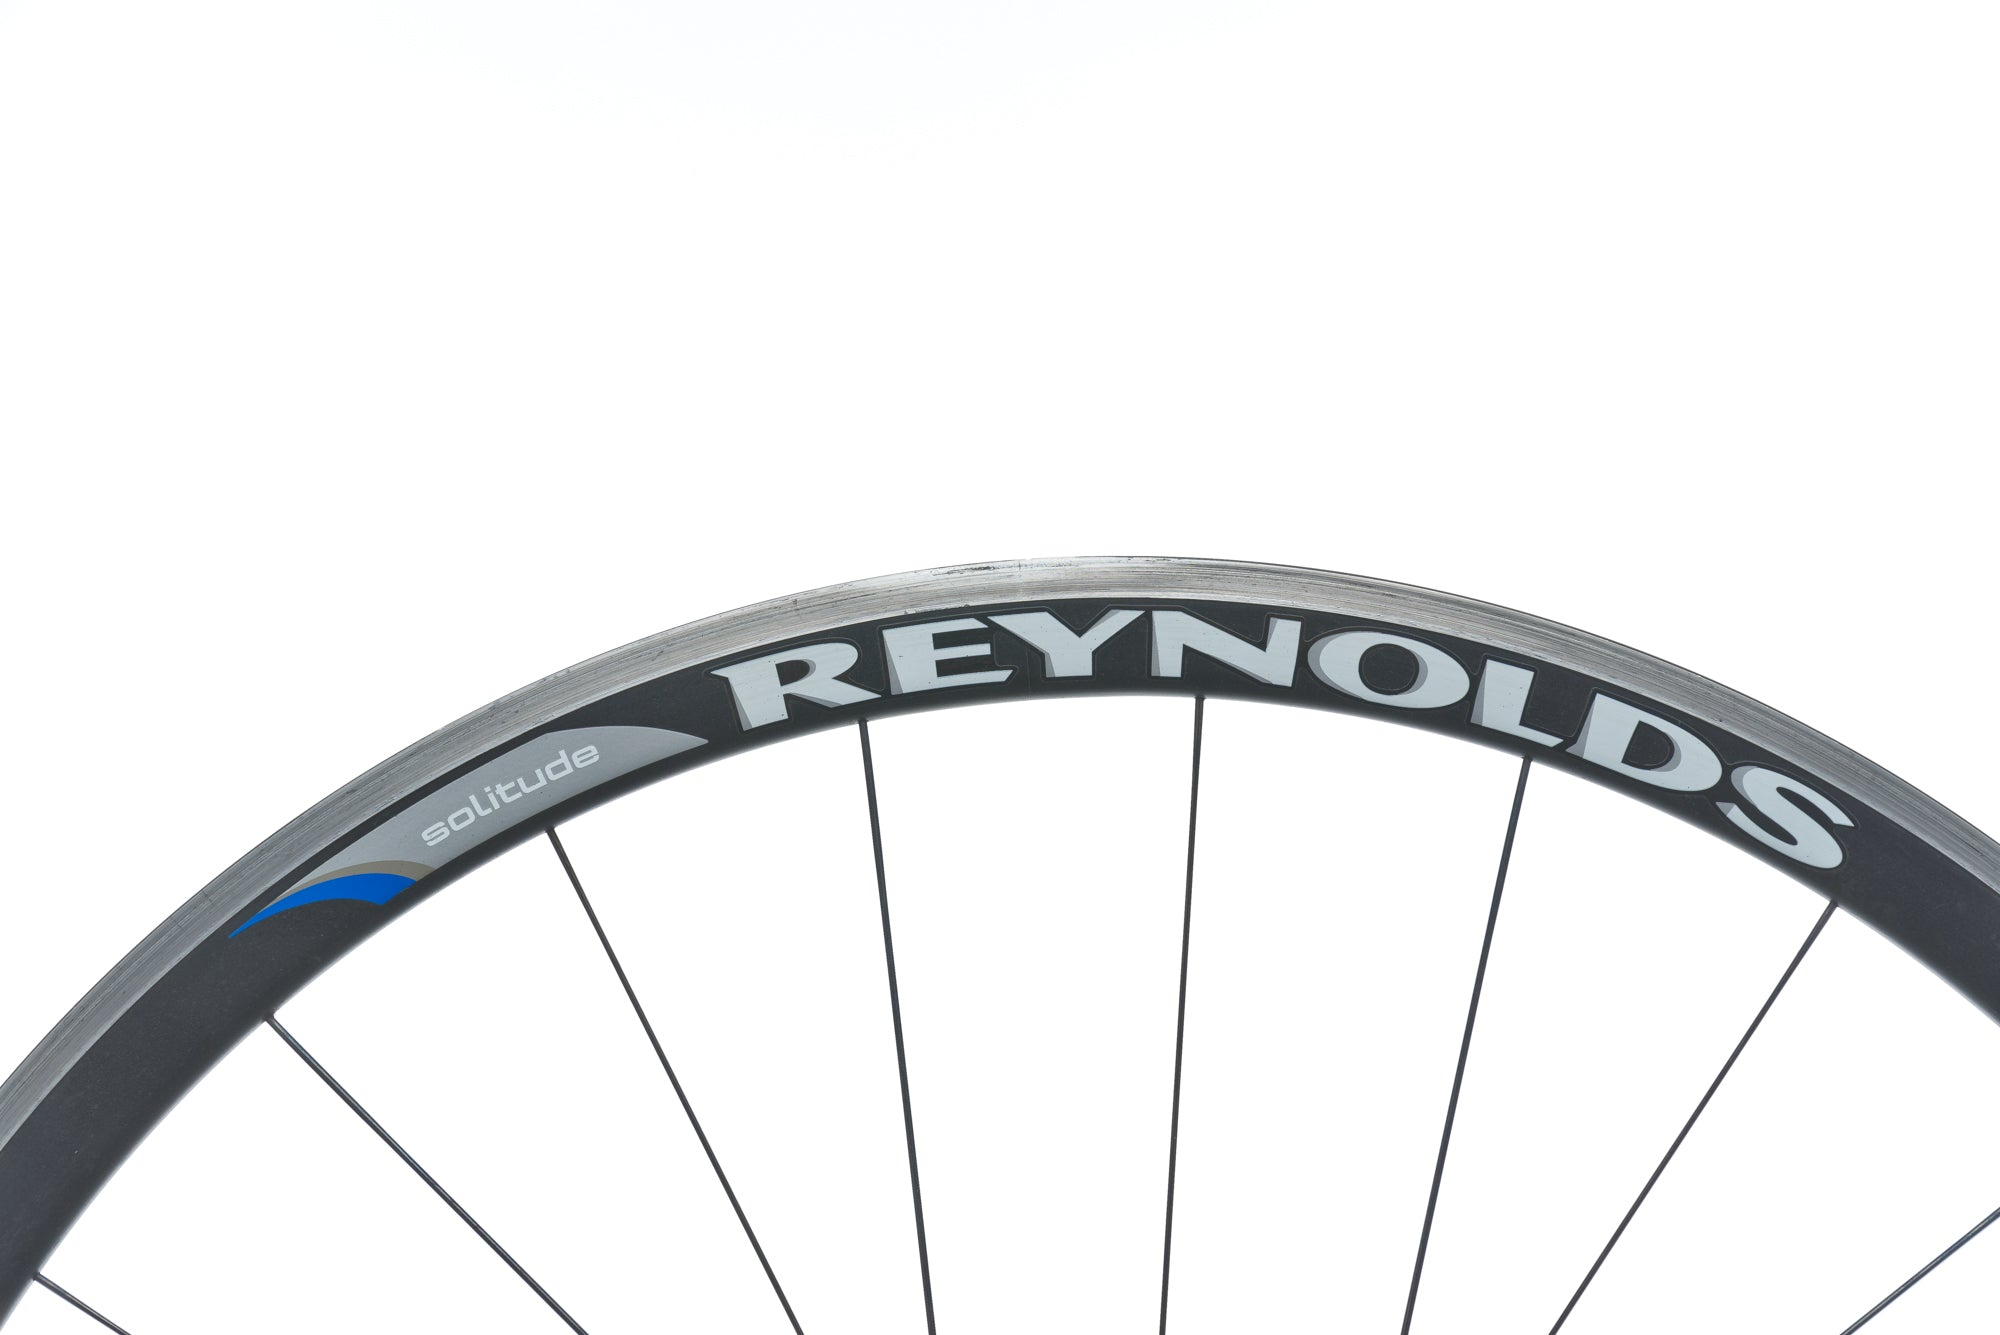 Reynolds Solitude Aluminum Clincher 700c Rear Wheel front wheel